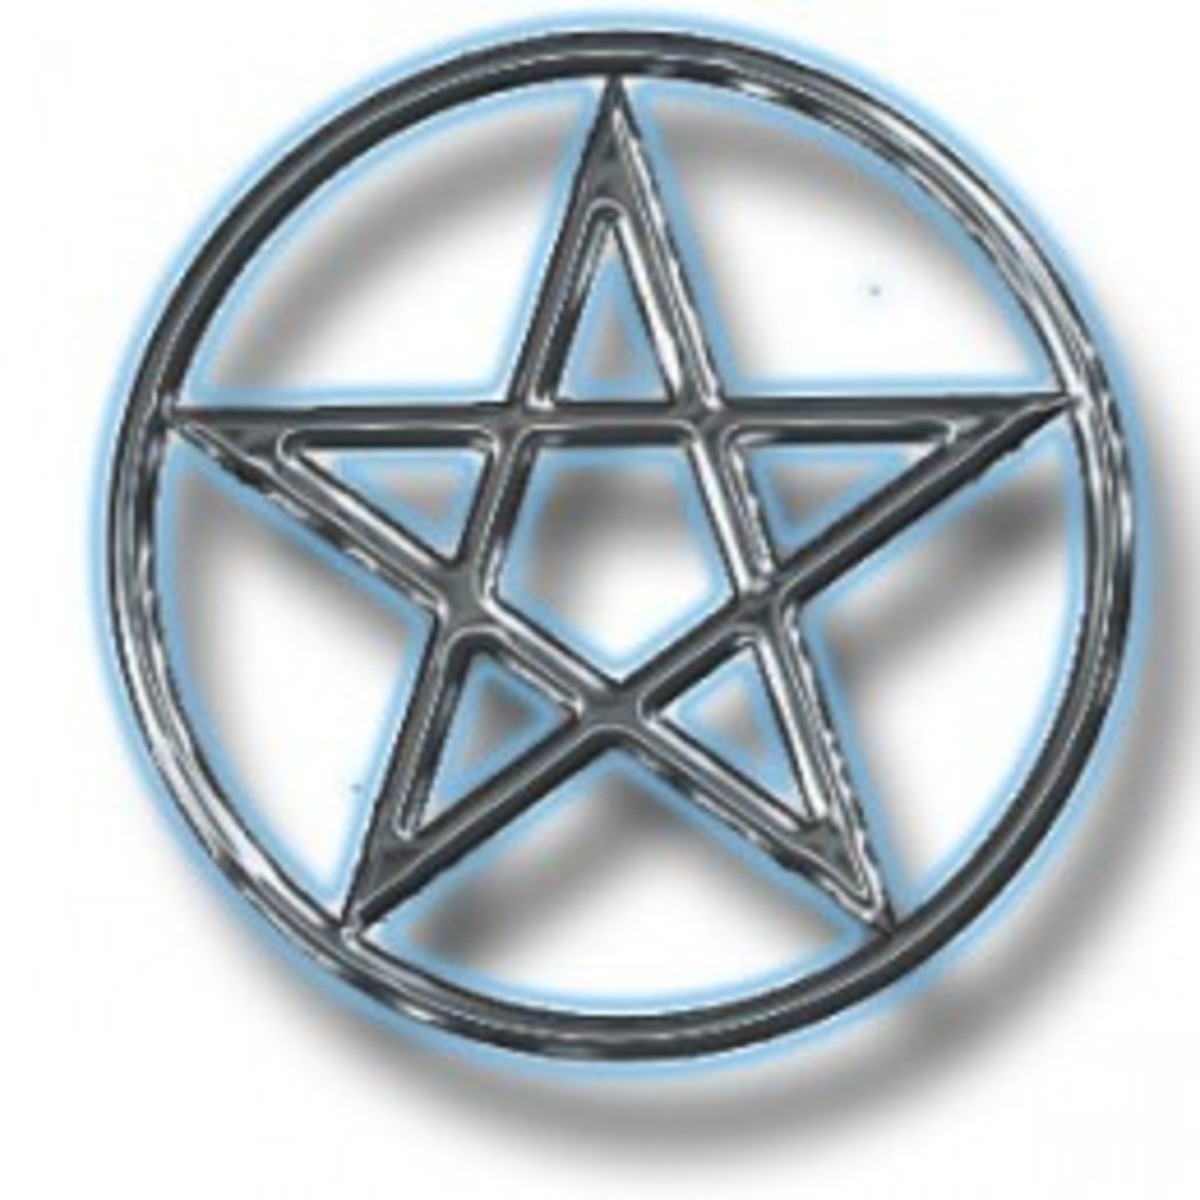 wicca-basics-an-introduction-to-ritual-structure